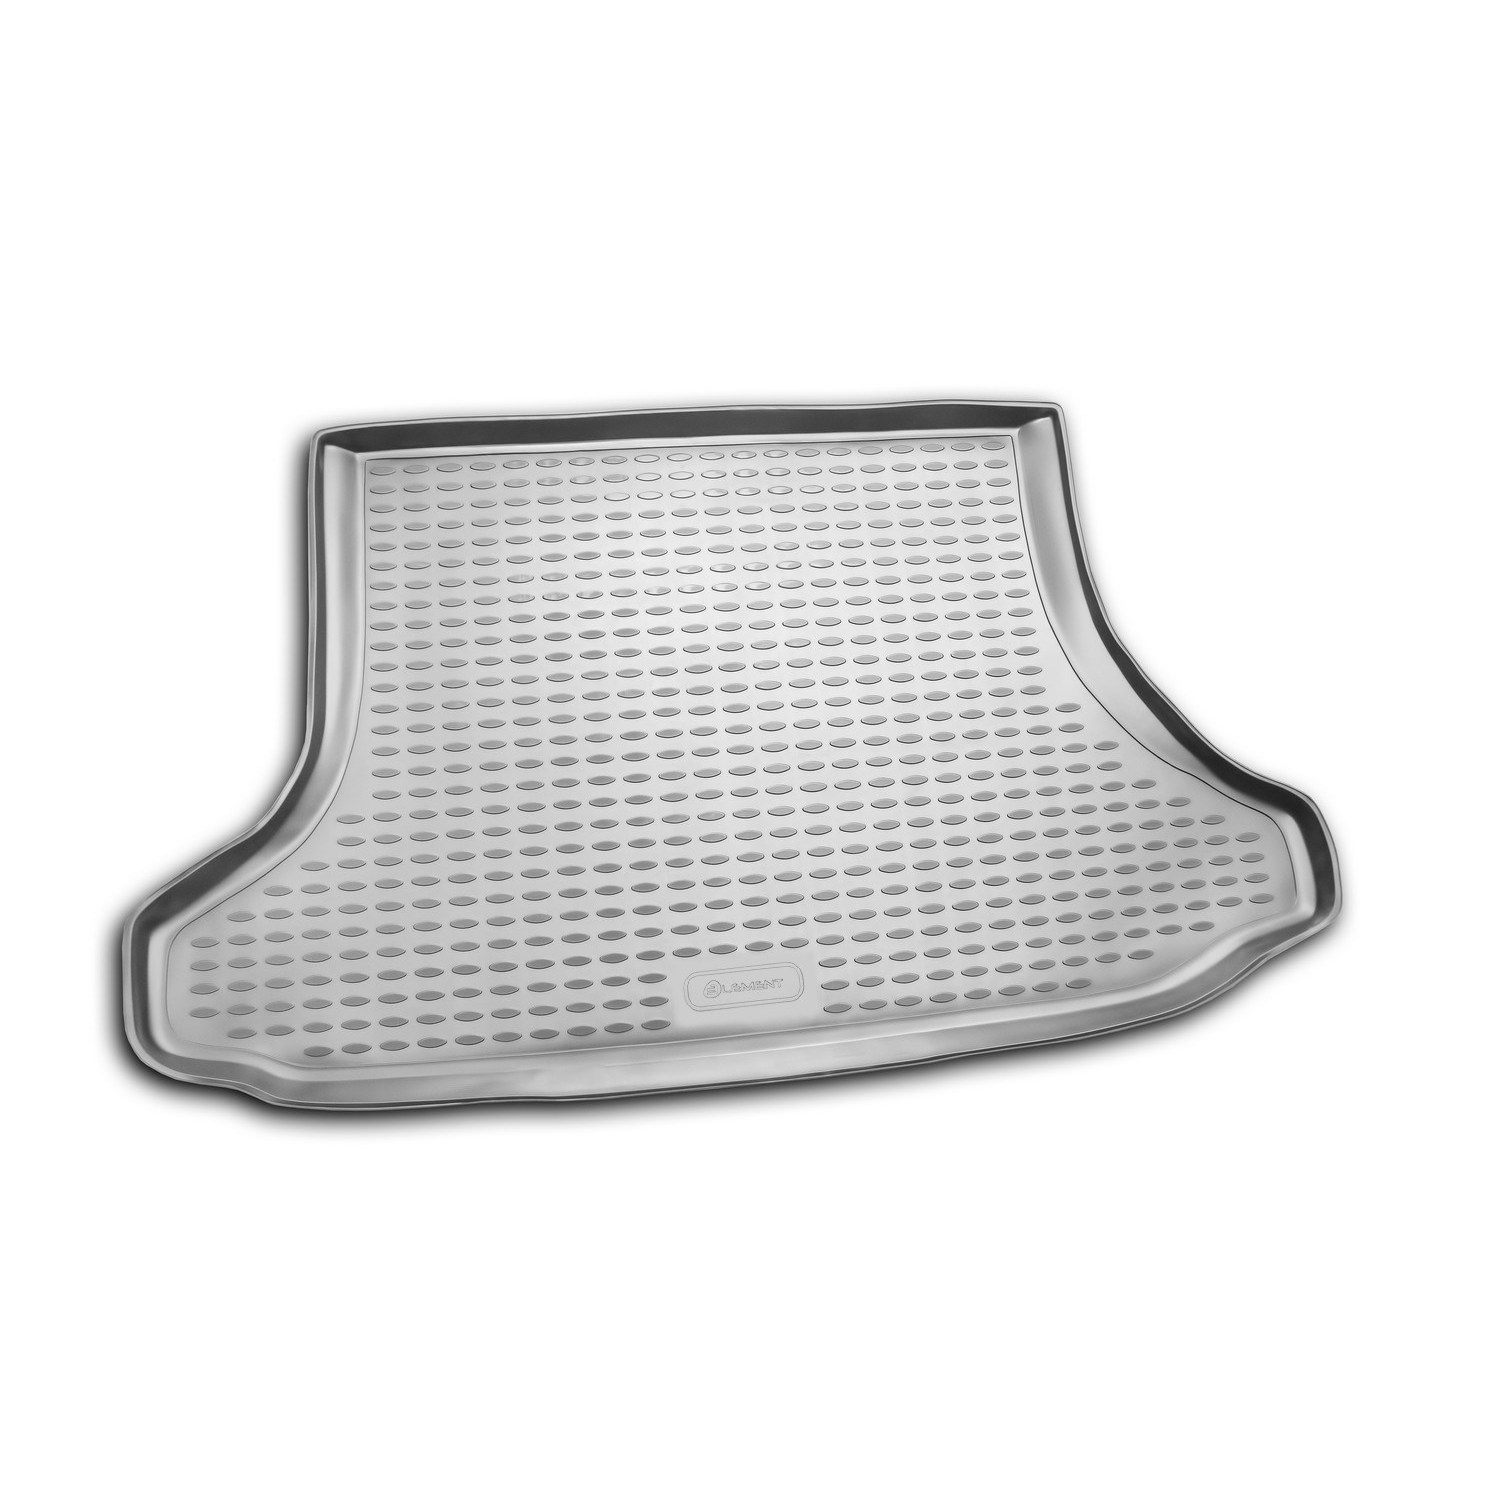 Trunk Mat For CHERY Tiggo 01/2006-2013, 2013-> Implement. NLC.63.03.B12